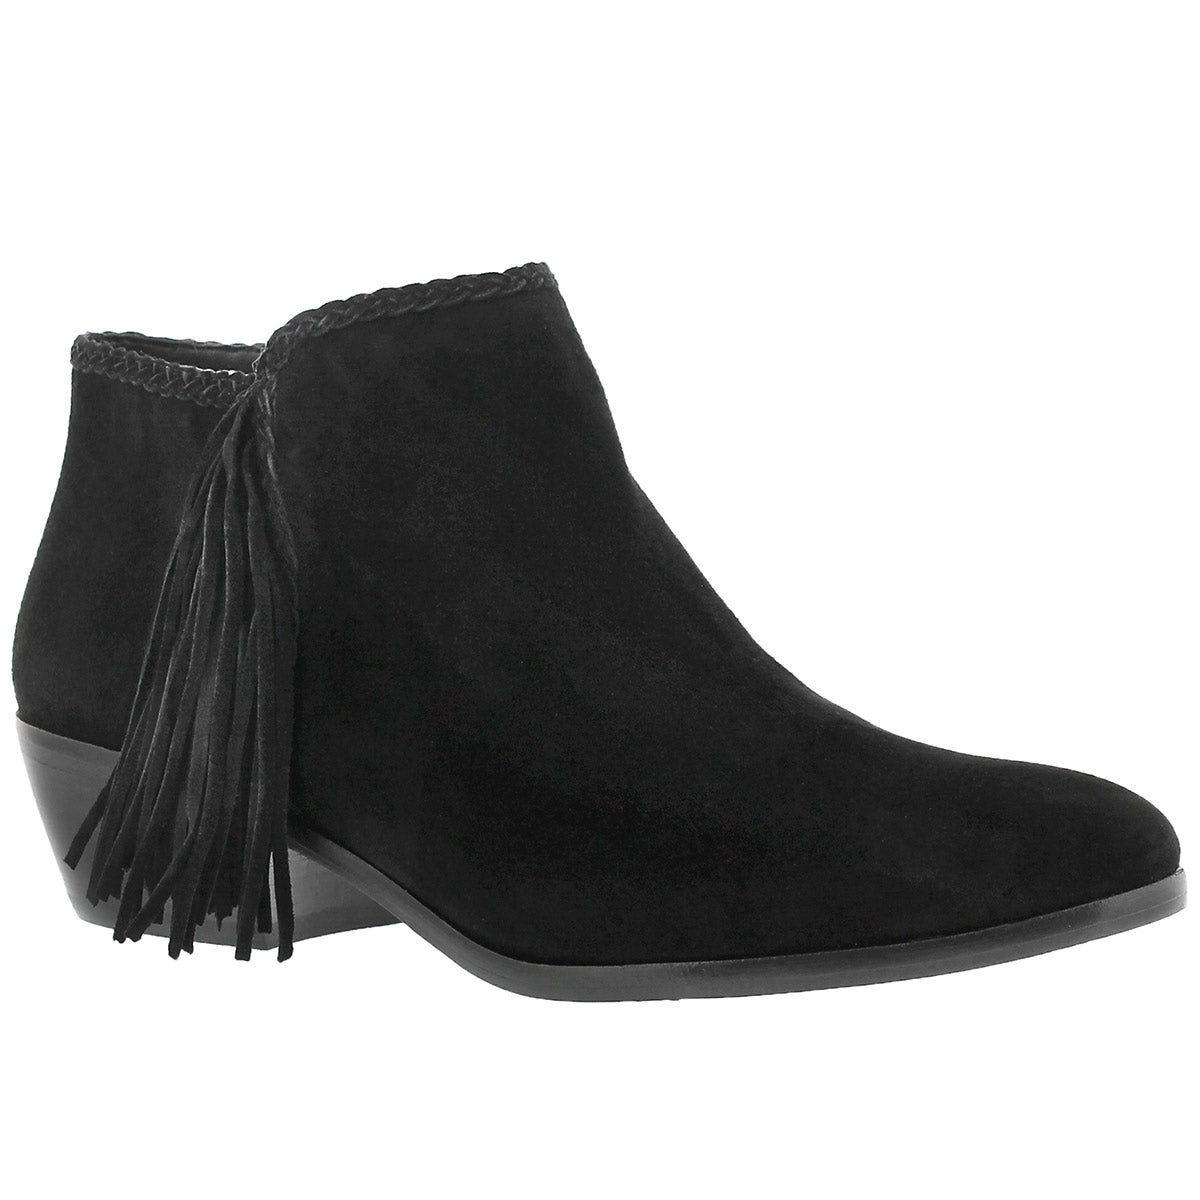 Women's PAIGE black fringe casual booties